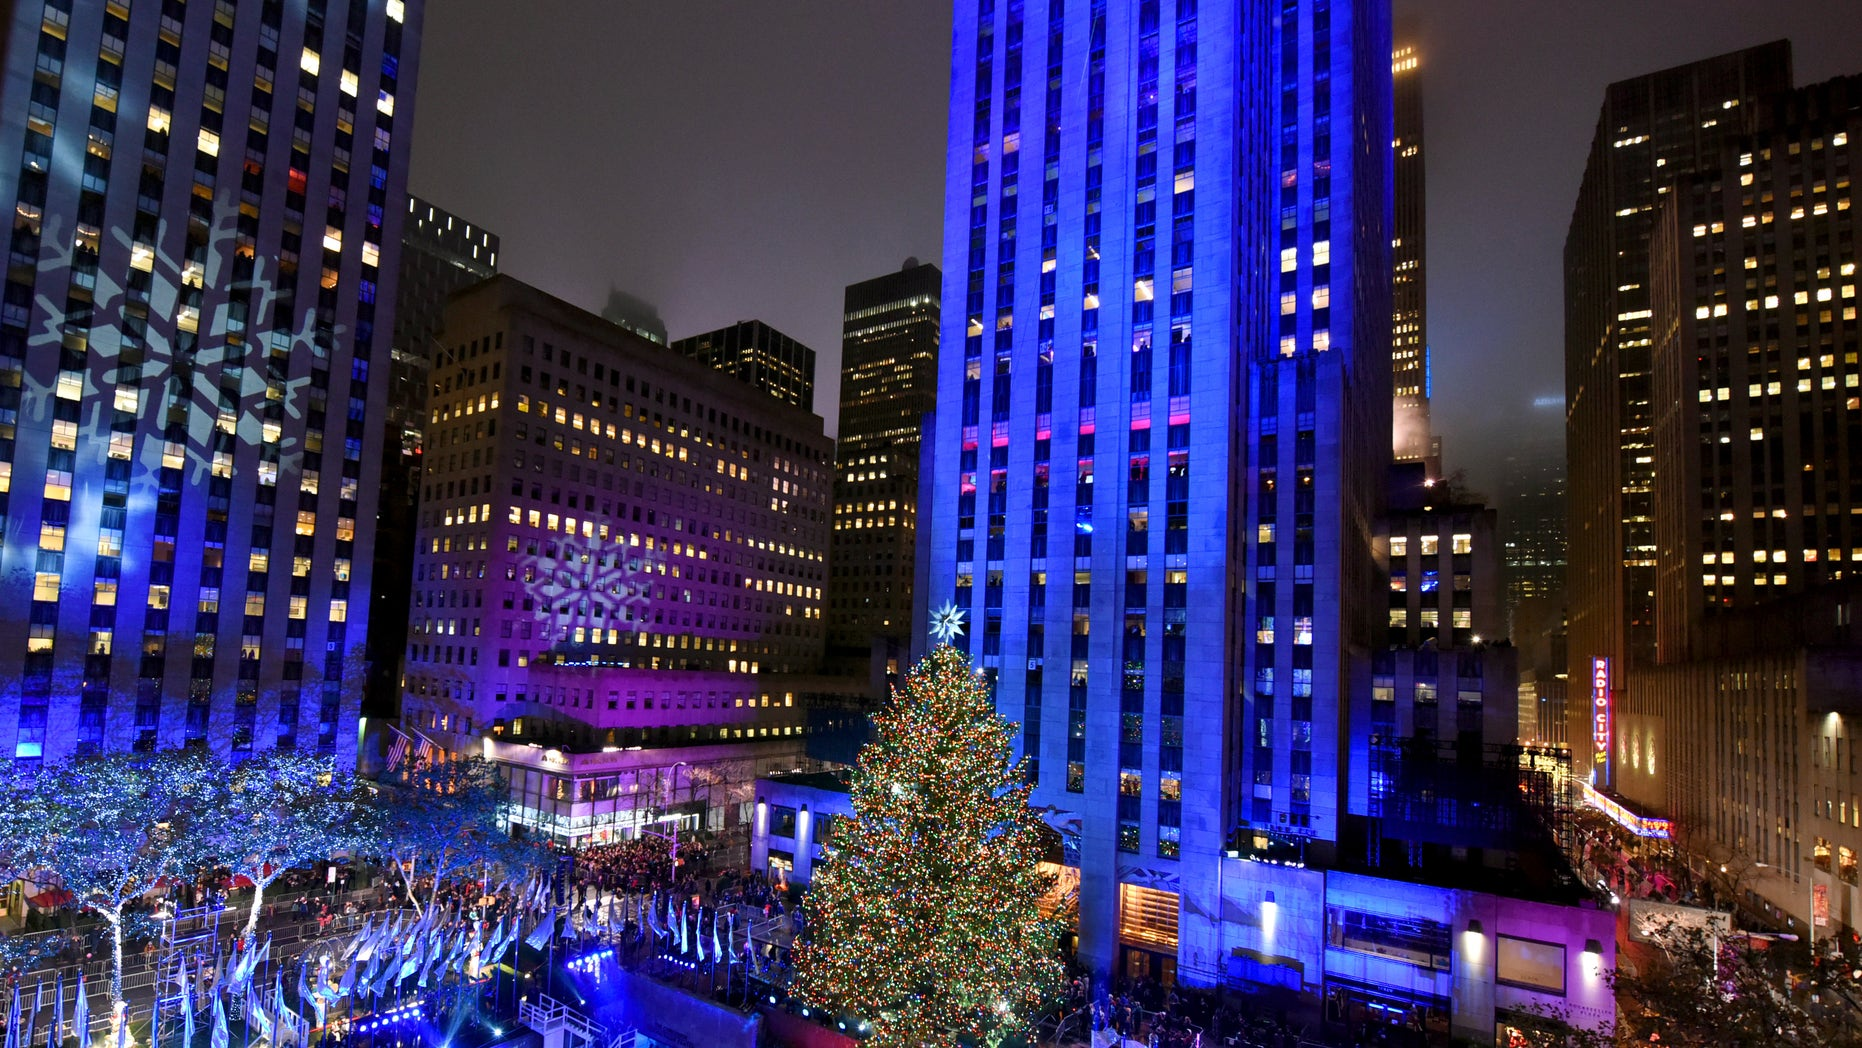 WNBC cuts away from shooting coverage to feature tree lighting ...